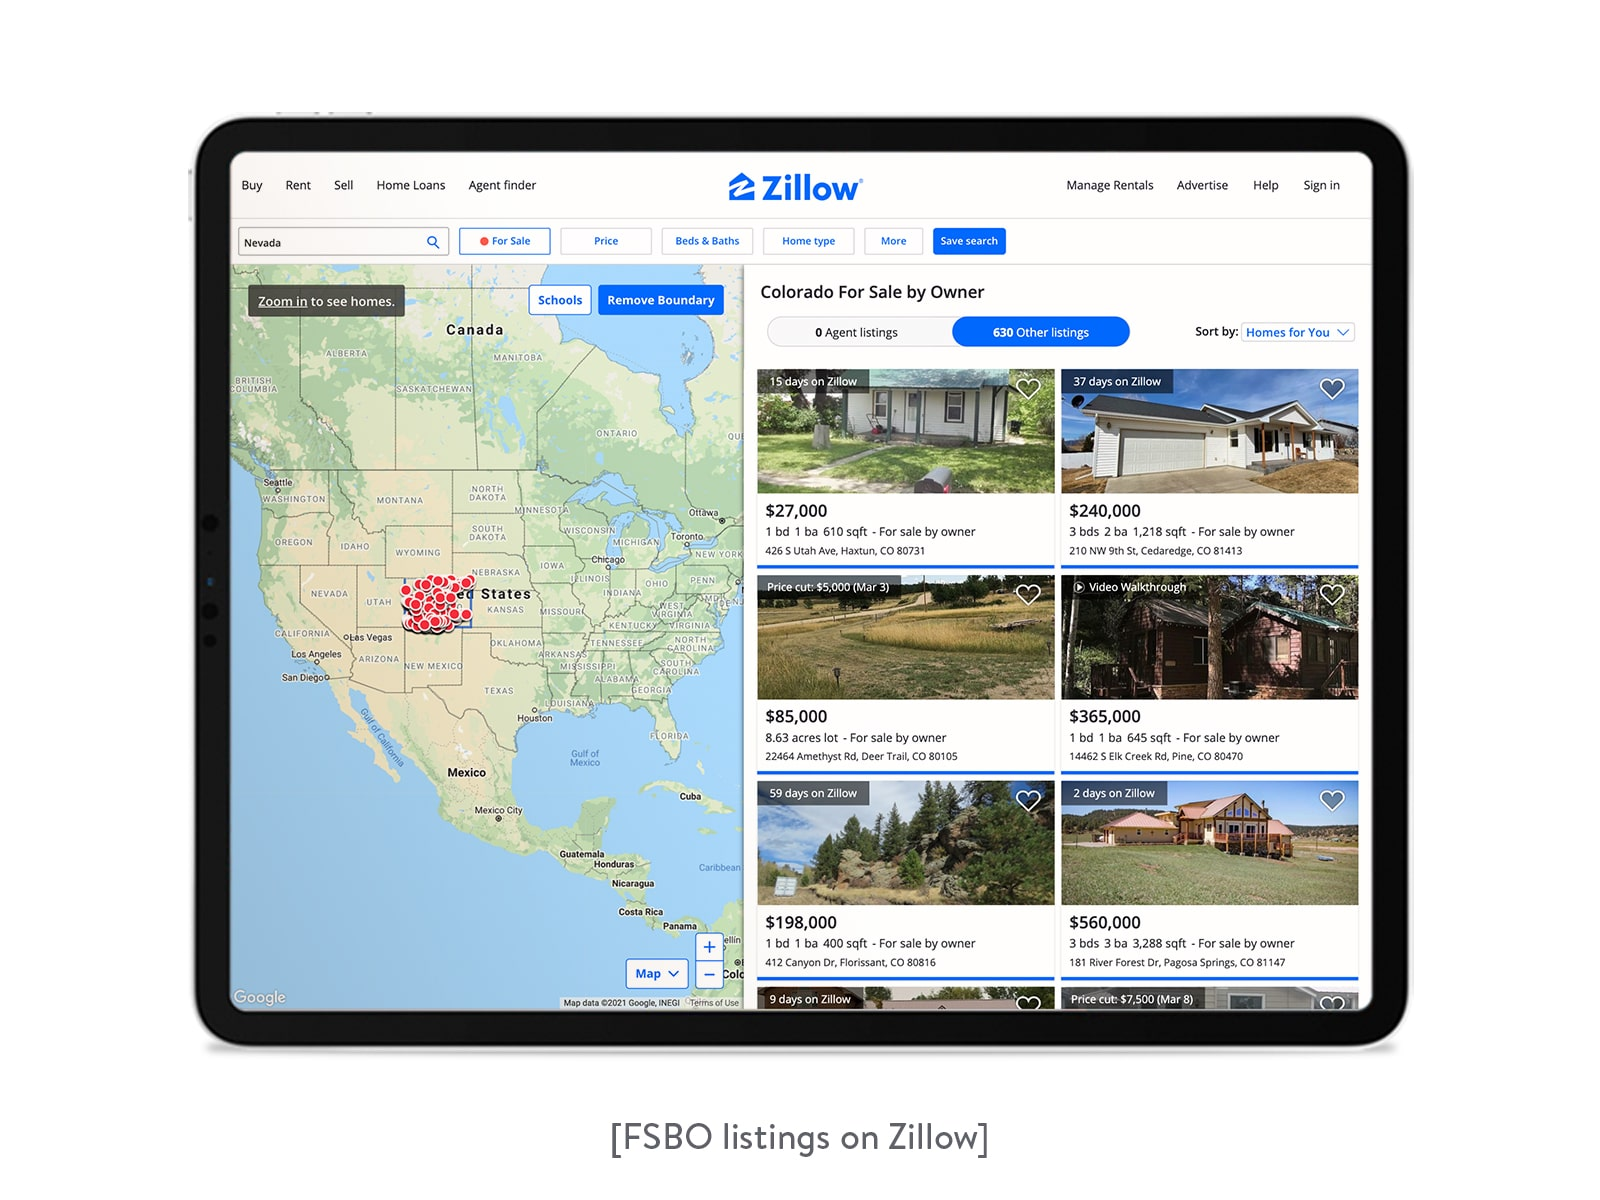 fsbo listings on zillow